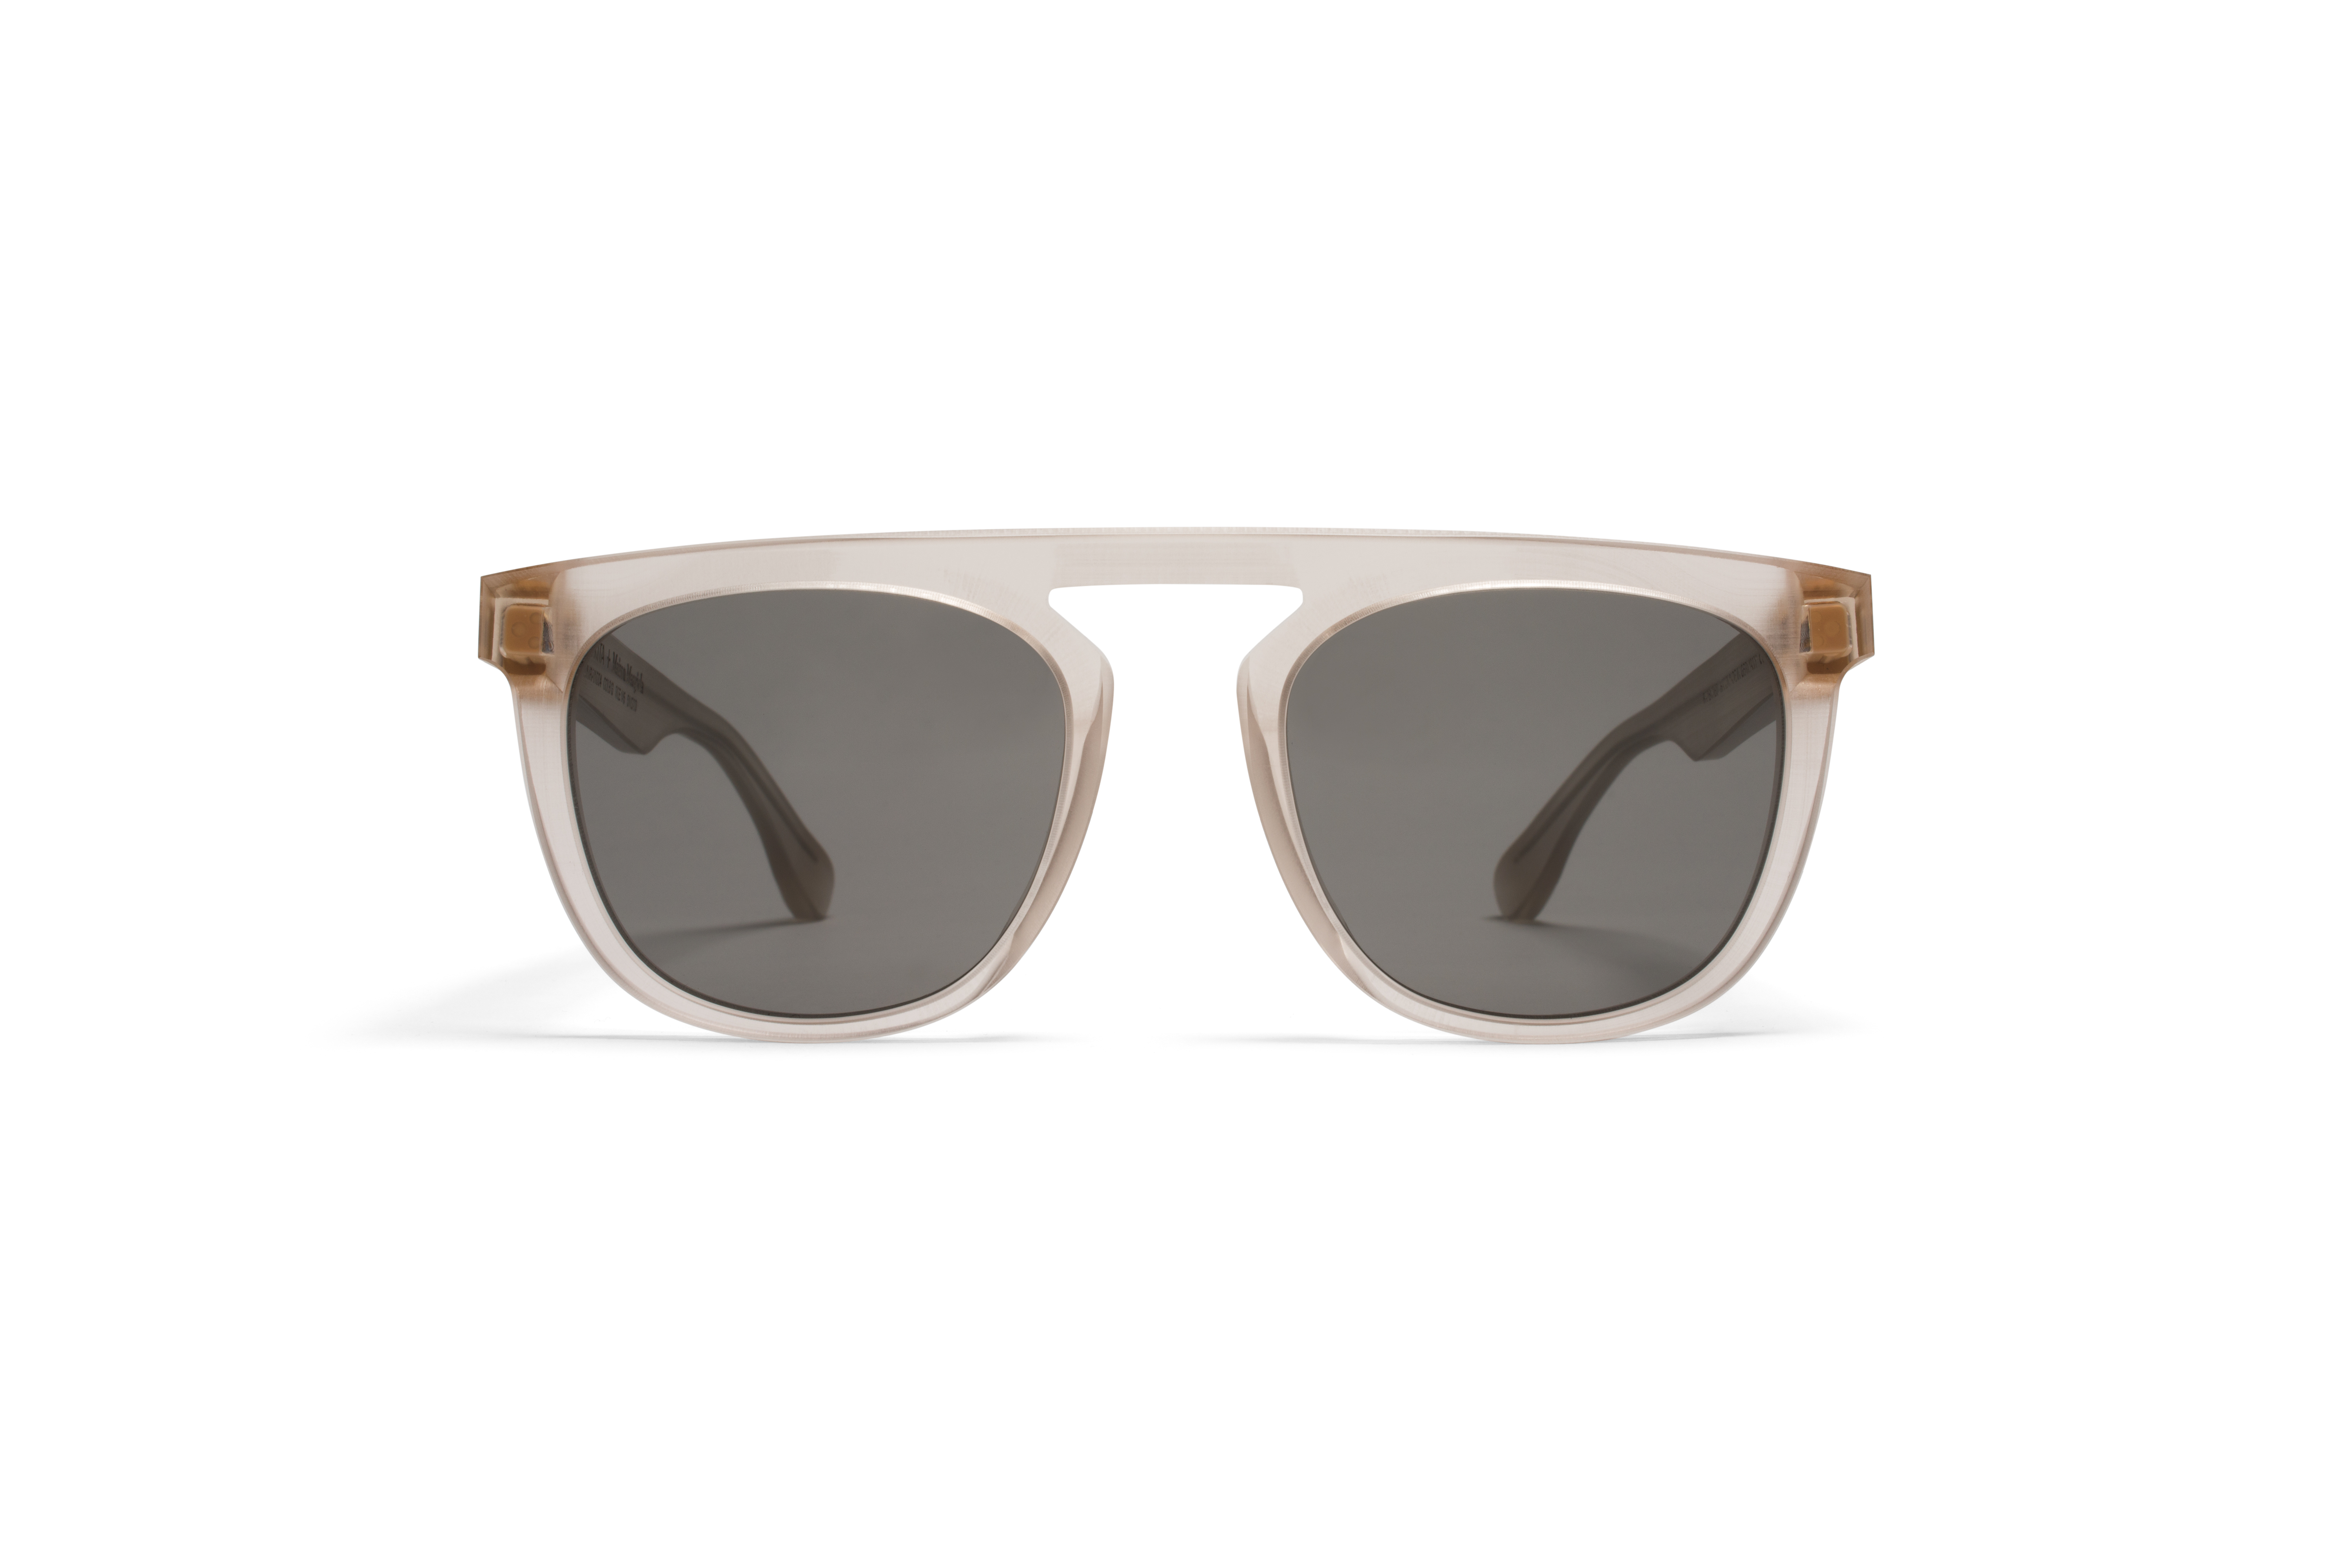 MYKITA Mm Sun Mmraw004 Raw Champagne Darkgrey So57fe2c1906d2d